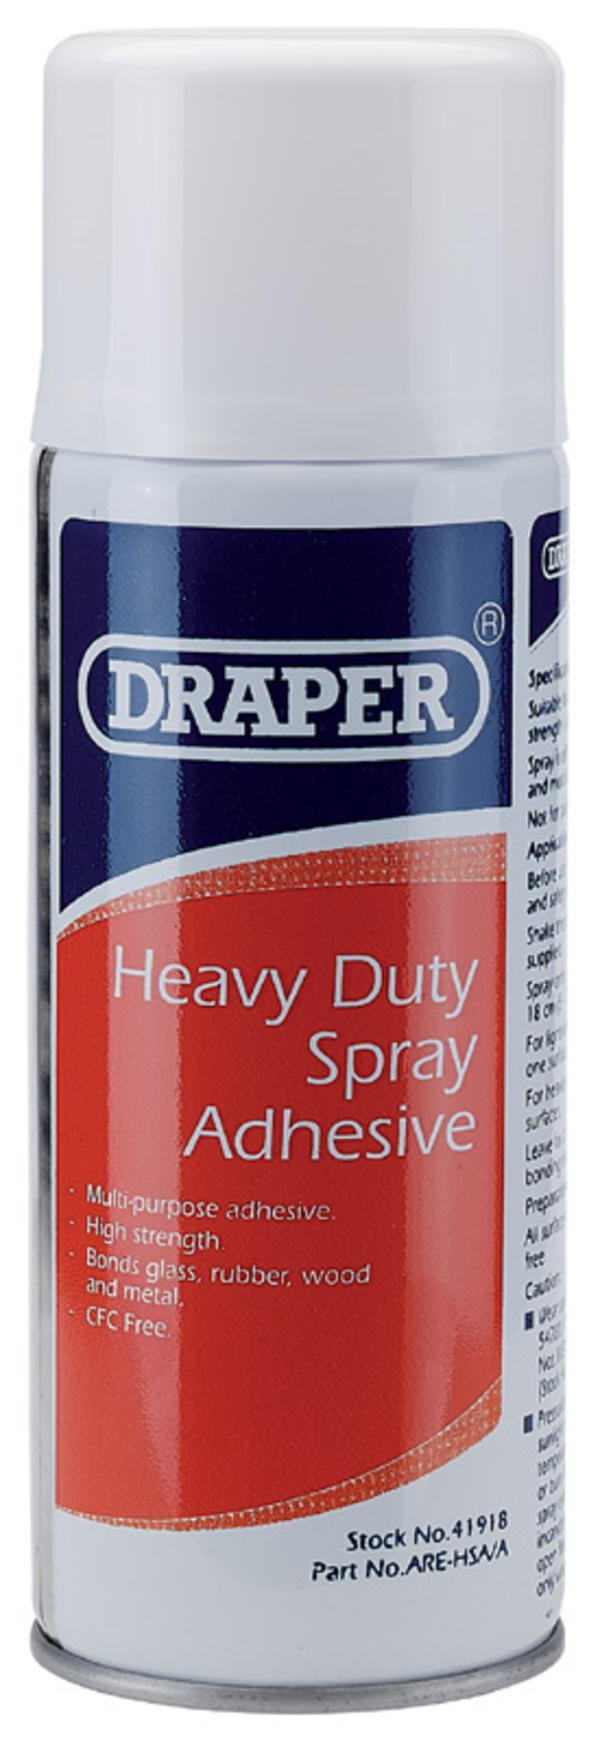 Draper 41918 ARE-HSA/A 400ml Heavy Duty Spray Adhesive Thumbnail 1